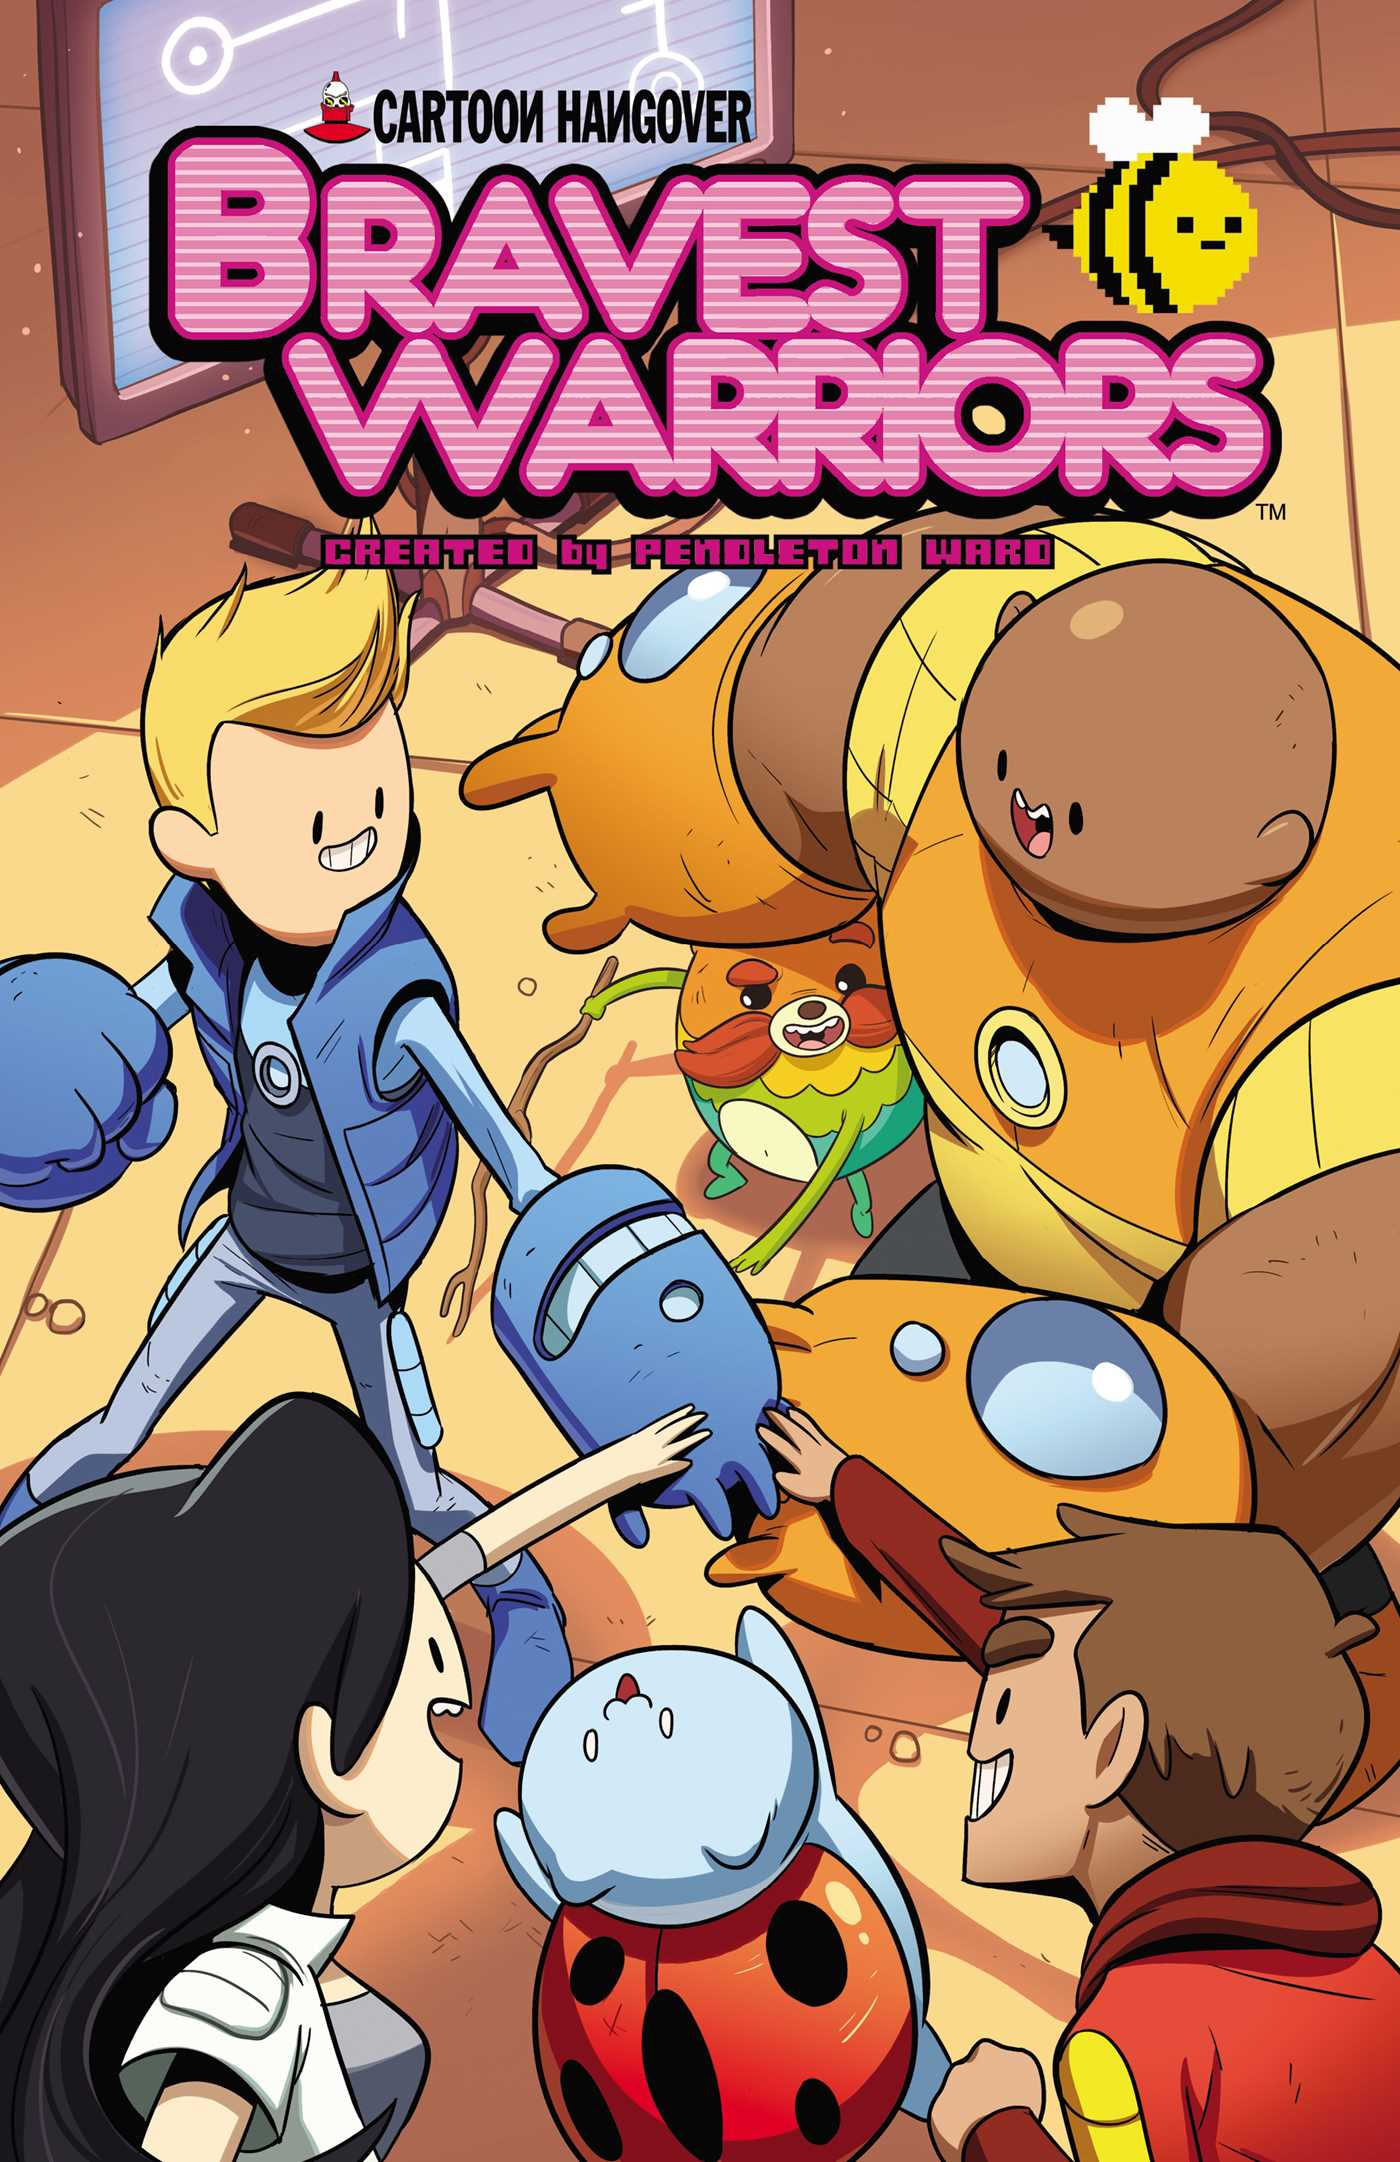 Bravest-warriors-vol-3-9781608863976_hr